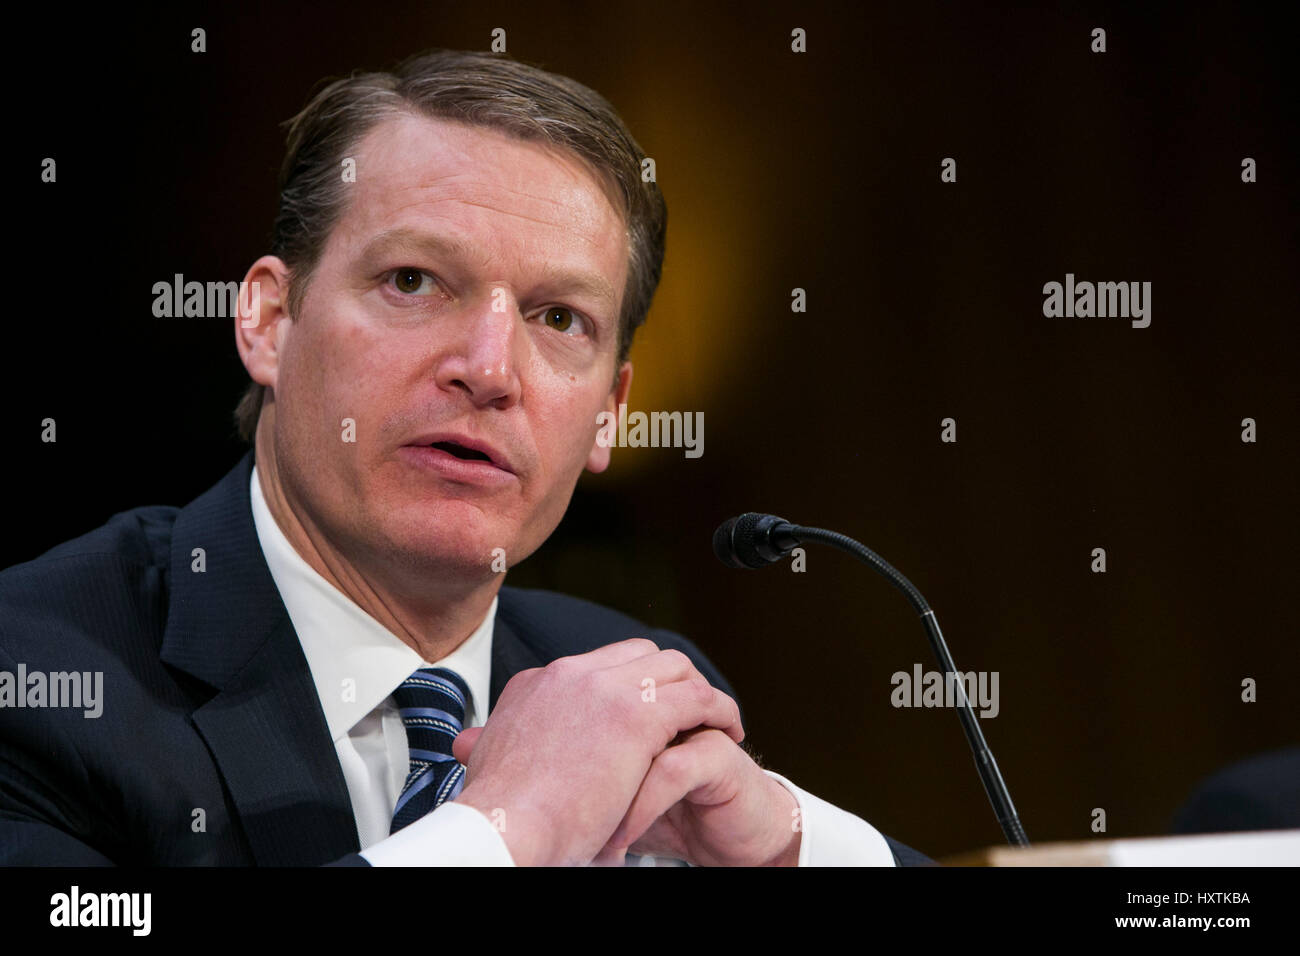 Washington DC, USA. 31st March 2017. Kevin Mandia, CEO of FireEye, testifies during a Senate Select Committee on - Stock Image